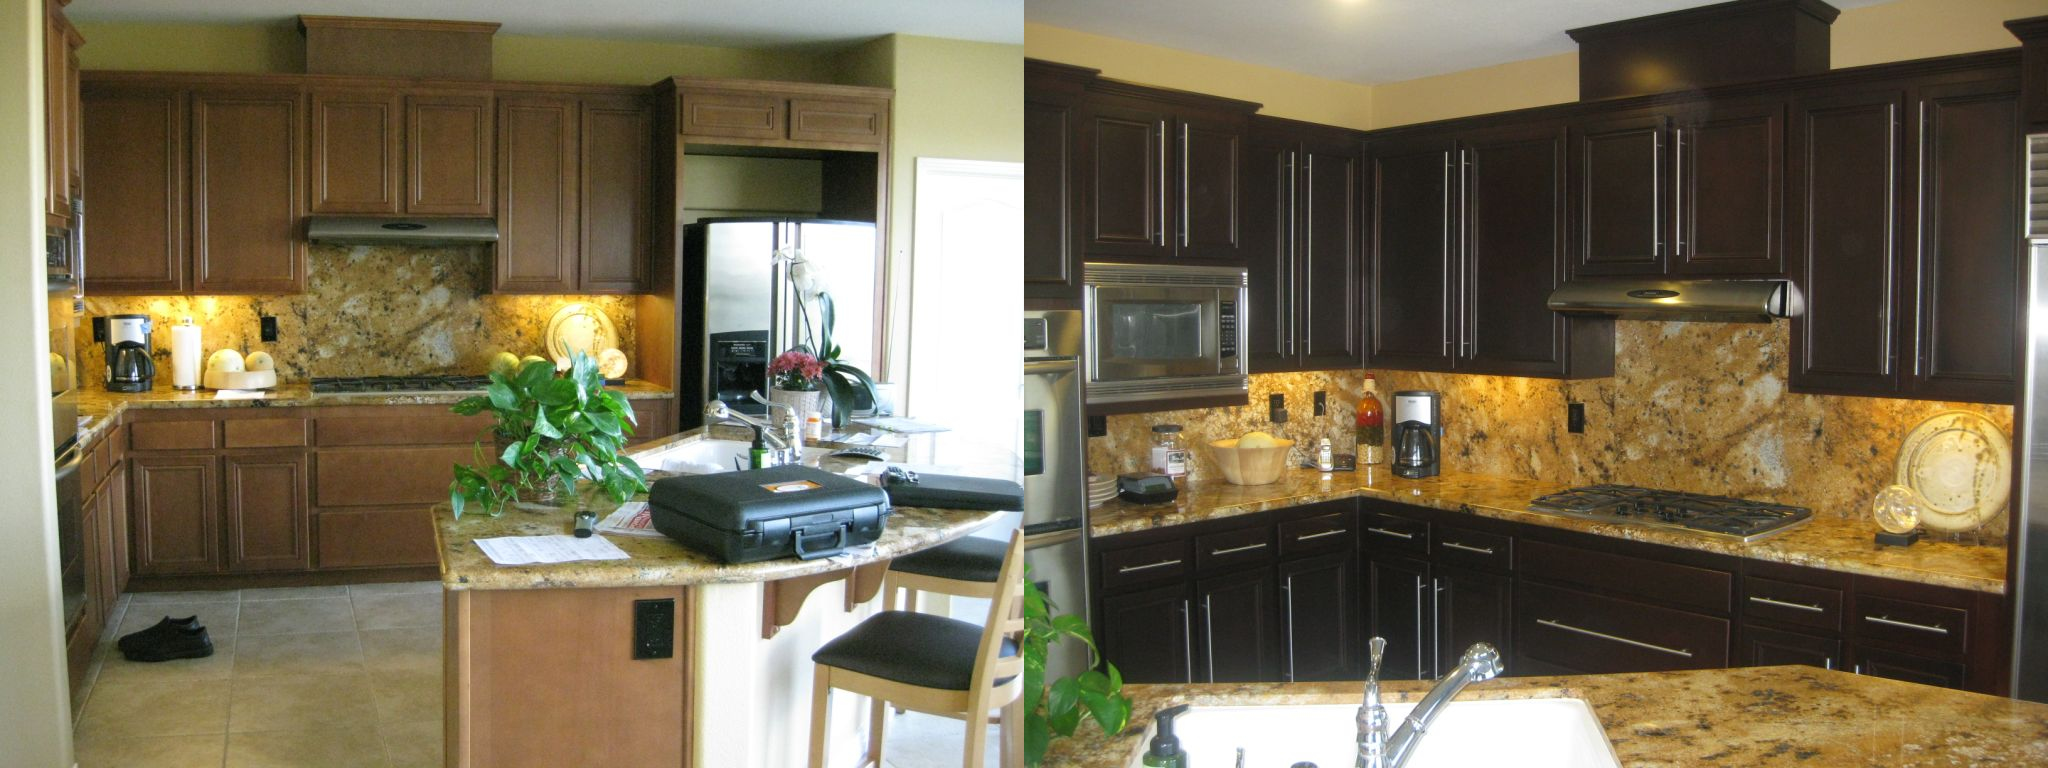 Kitchen remodeling companies in sonoma county fondare finish for Kitchen remodeling companies